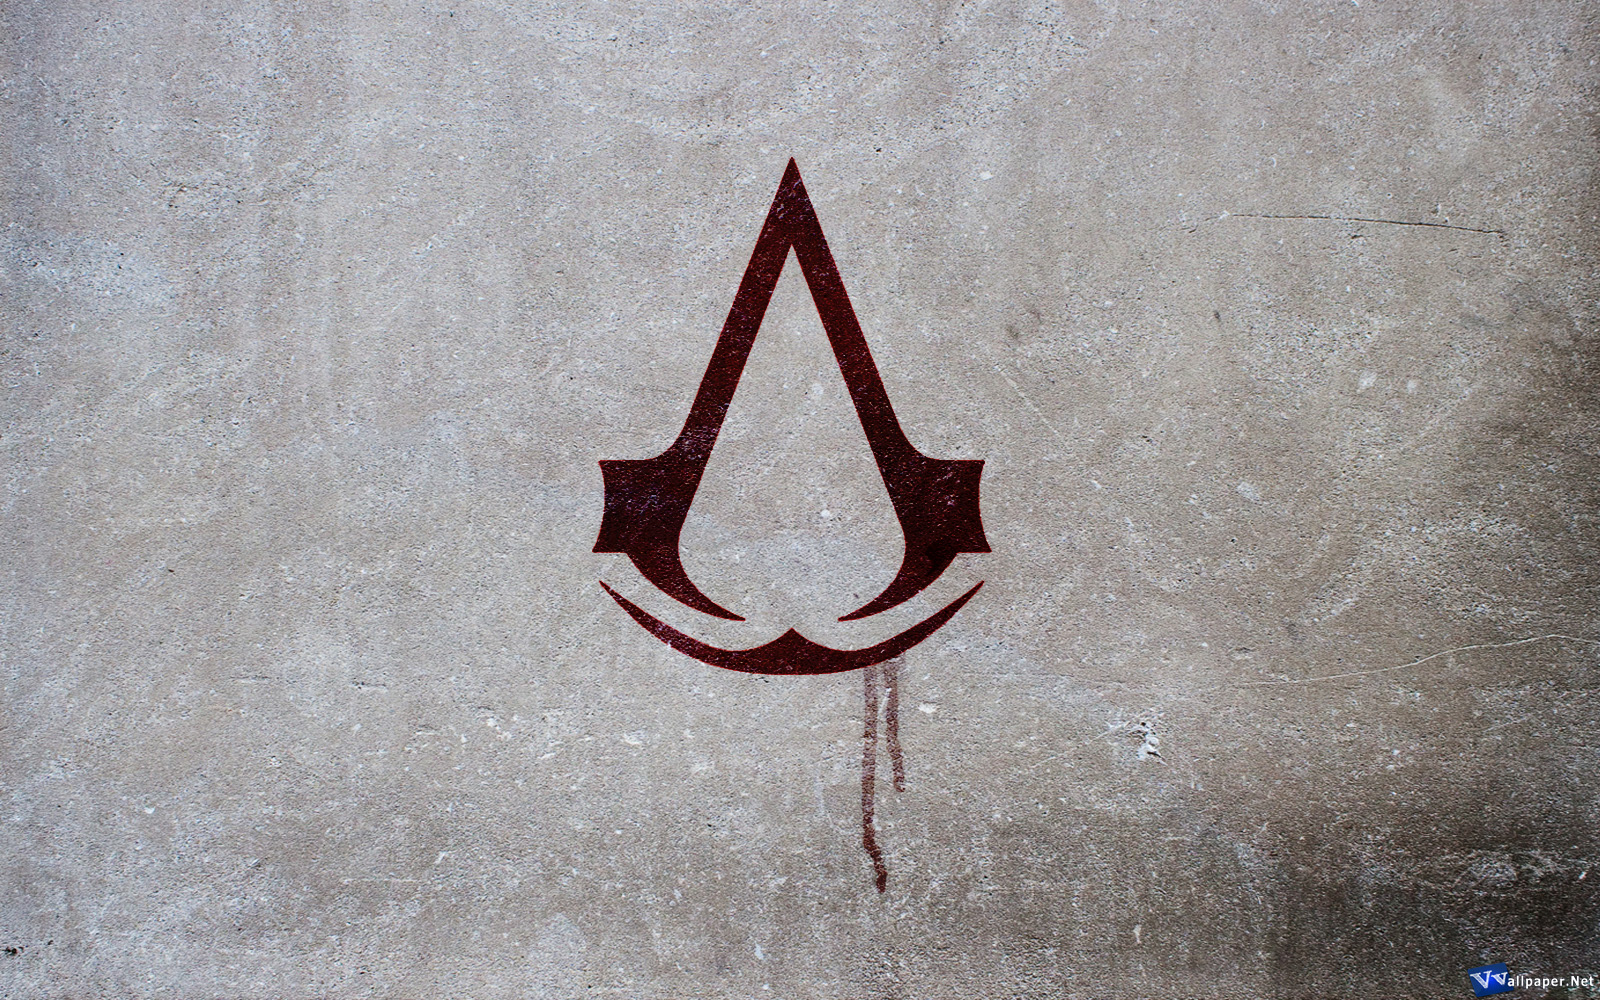 http://3.bp.blogspot.com/-U5yivCVnaqM/Too8aFF45EI/AAAAAAAADV4/VYC-8aEPtlQ/s1600/Assassin%2527s_Creed_Symbol_HD_Wallpaper_GameWallBase.com.jpg.jpg